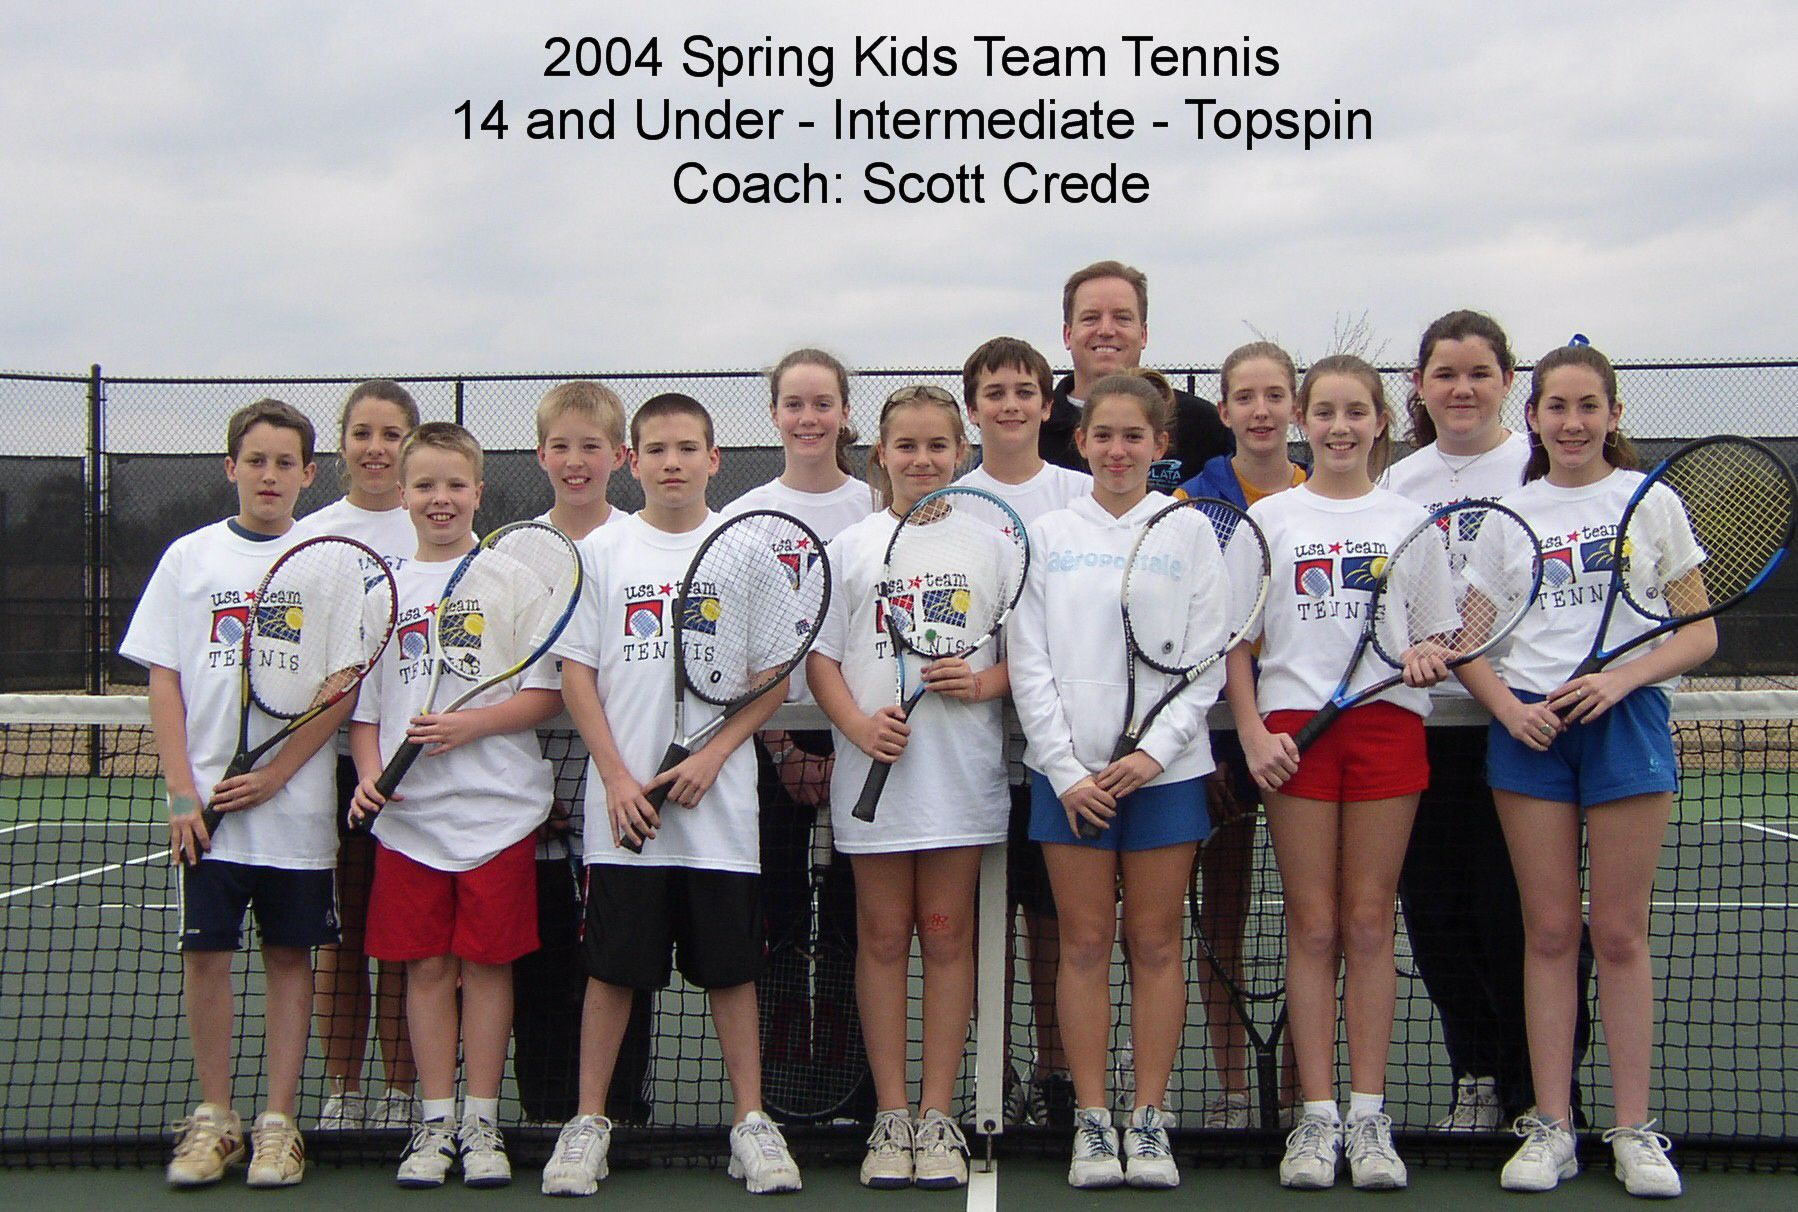 14 and Under - Intermediate - Coach Scott Crede